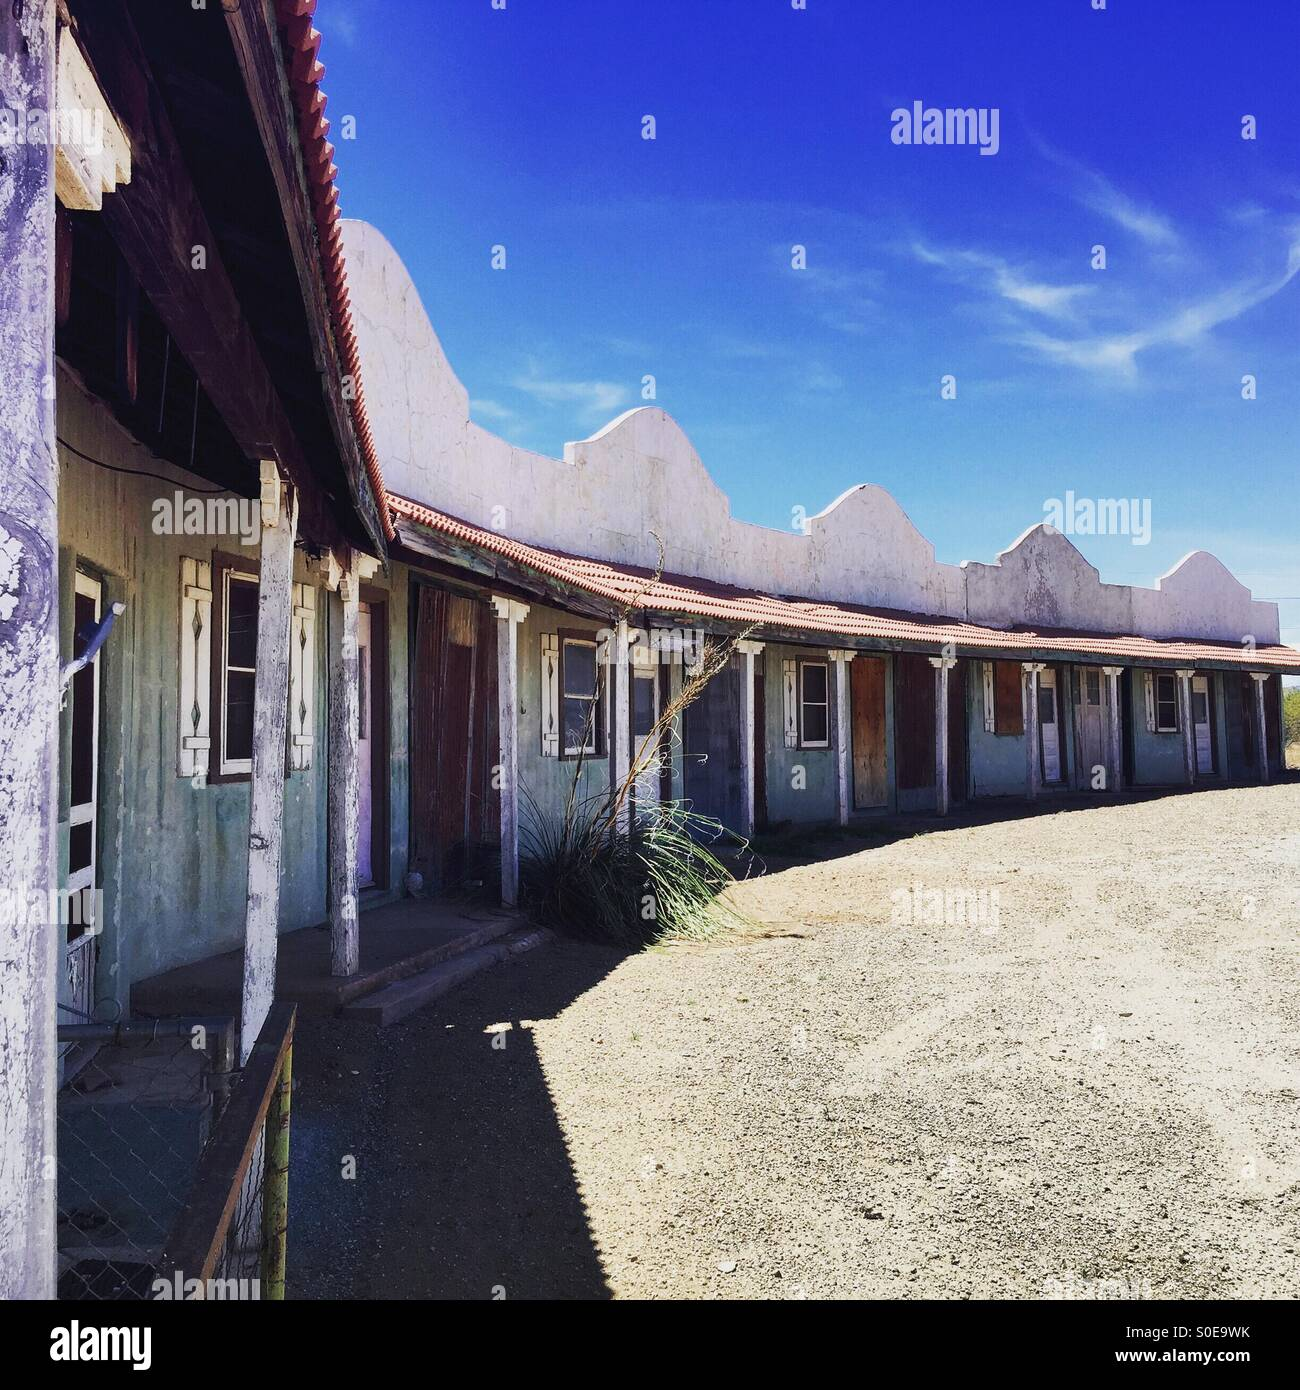 Abandoned motel in Lordsburg New Mexico - Stock Image & Lordsburg New Mexico Stock Photos u0026 Lordsburg New Mexico Stock ...